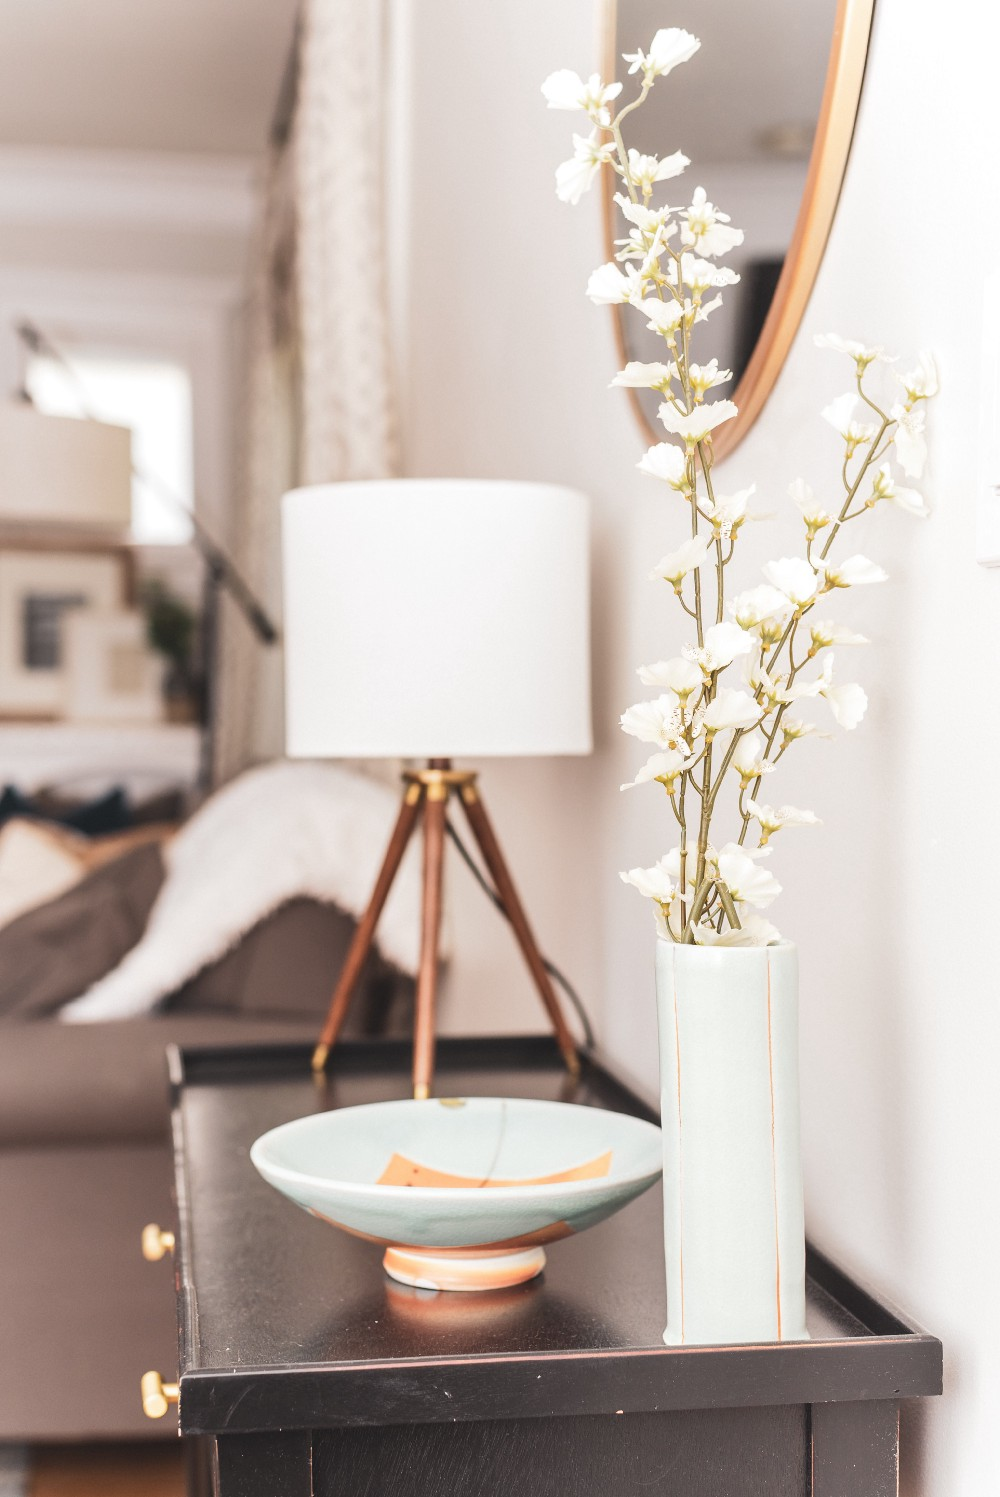 Vignette of a side table with a vase of small white flowers next to a celadon glazed bowl and a small table lamp